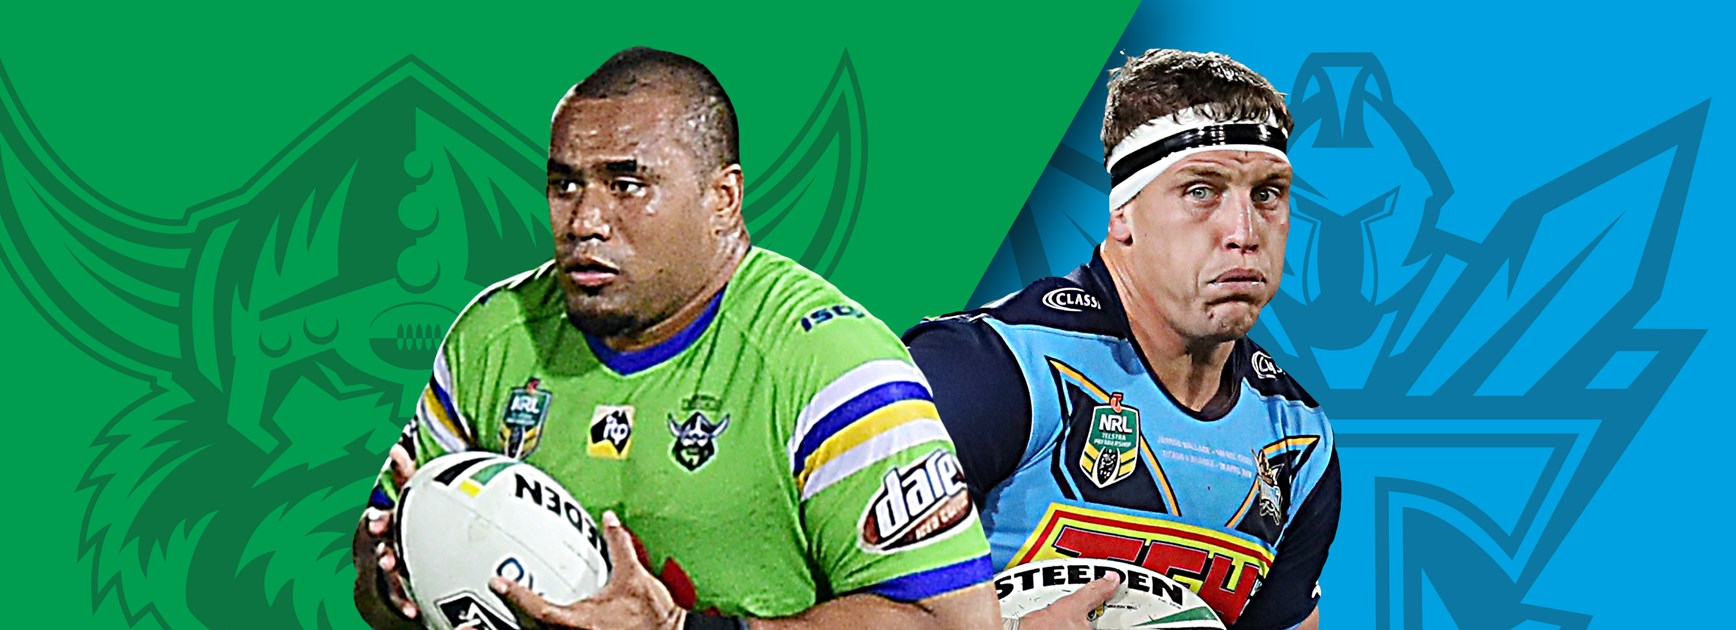 Raiders v Titans: Hosts unchanged; Matthews out, King to start